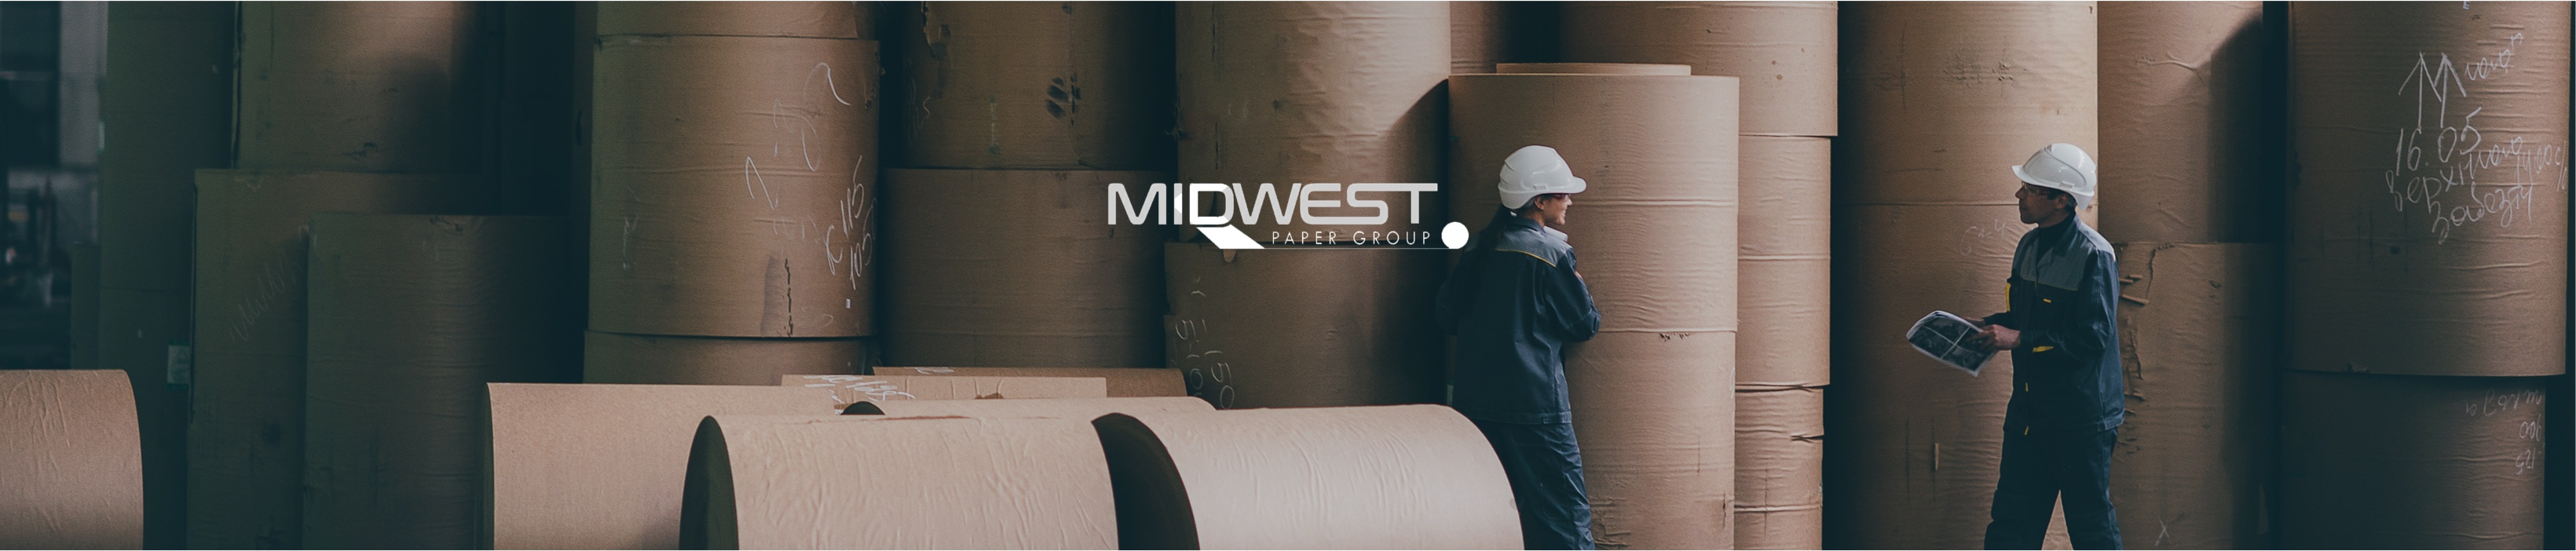 Midwest Paper hero